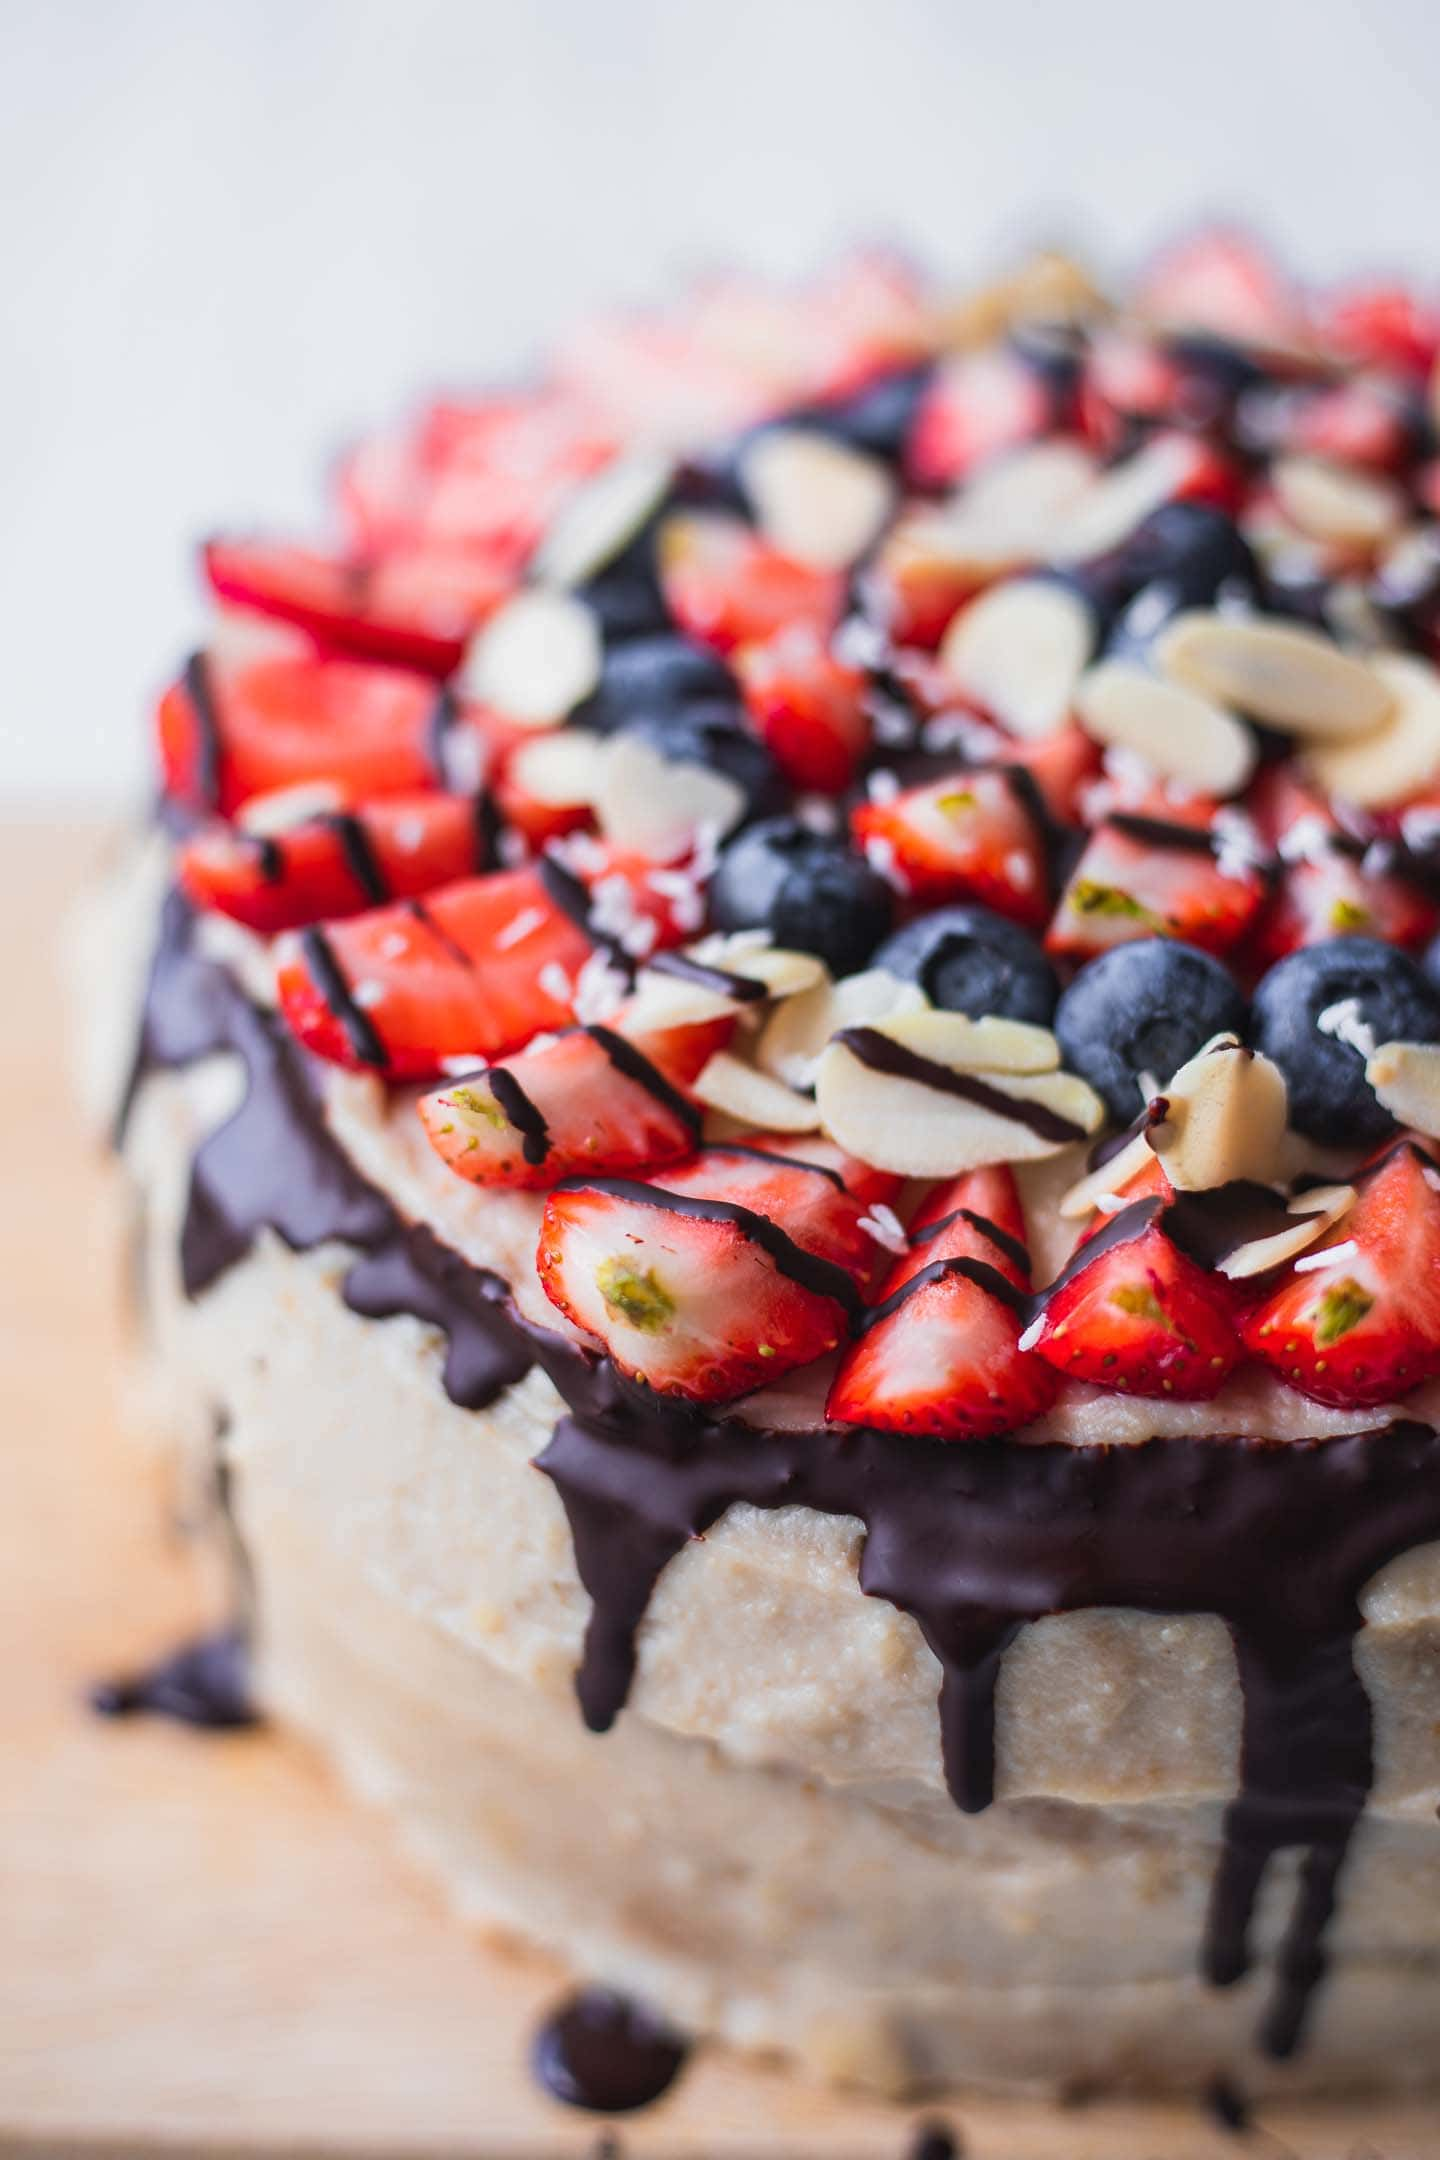 Closeup of vegan cake with berries and chocoalate